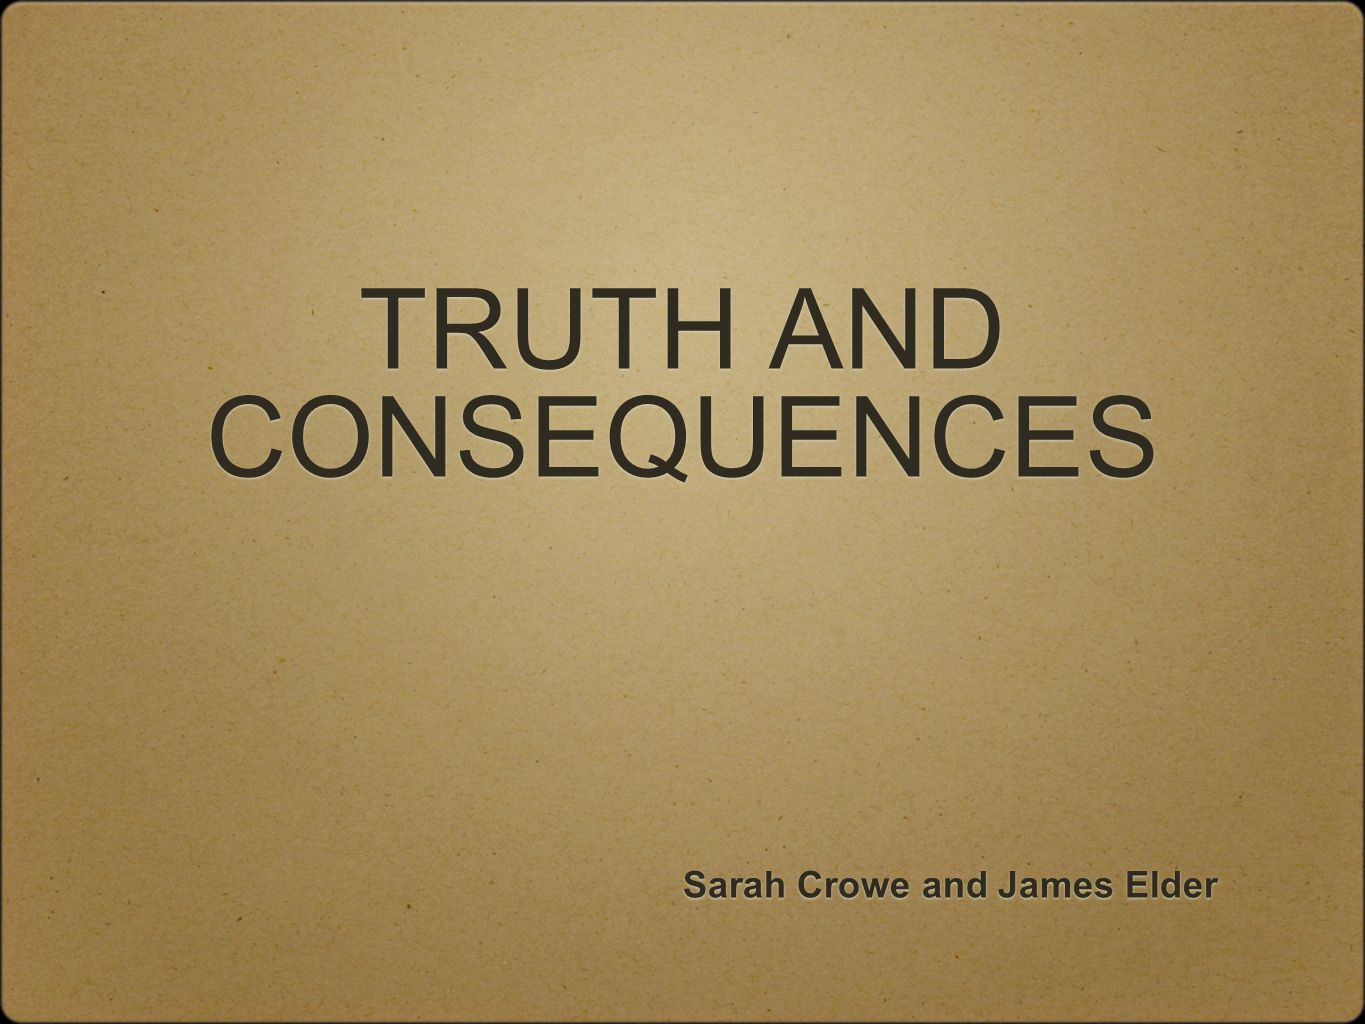 TRUTH AND CONSEQUENCES Sarah Crowe and James Elder